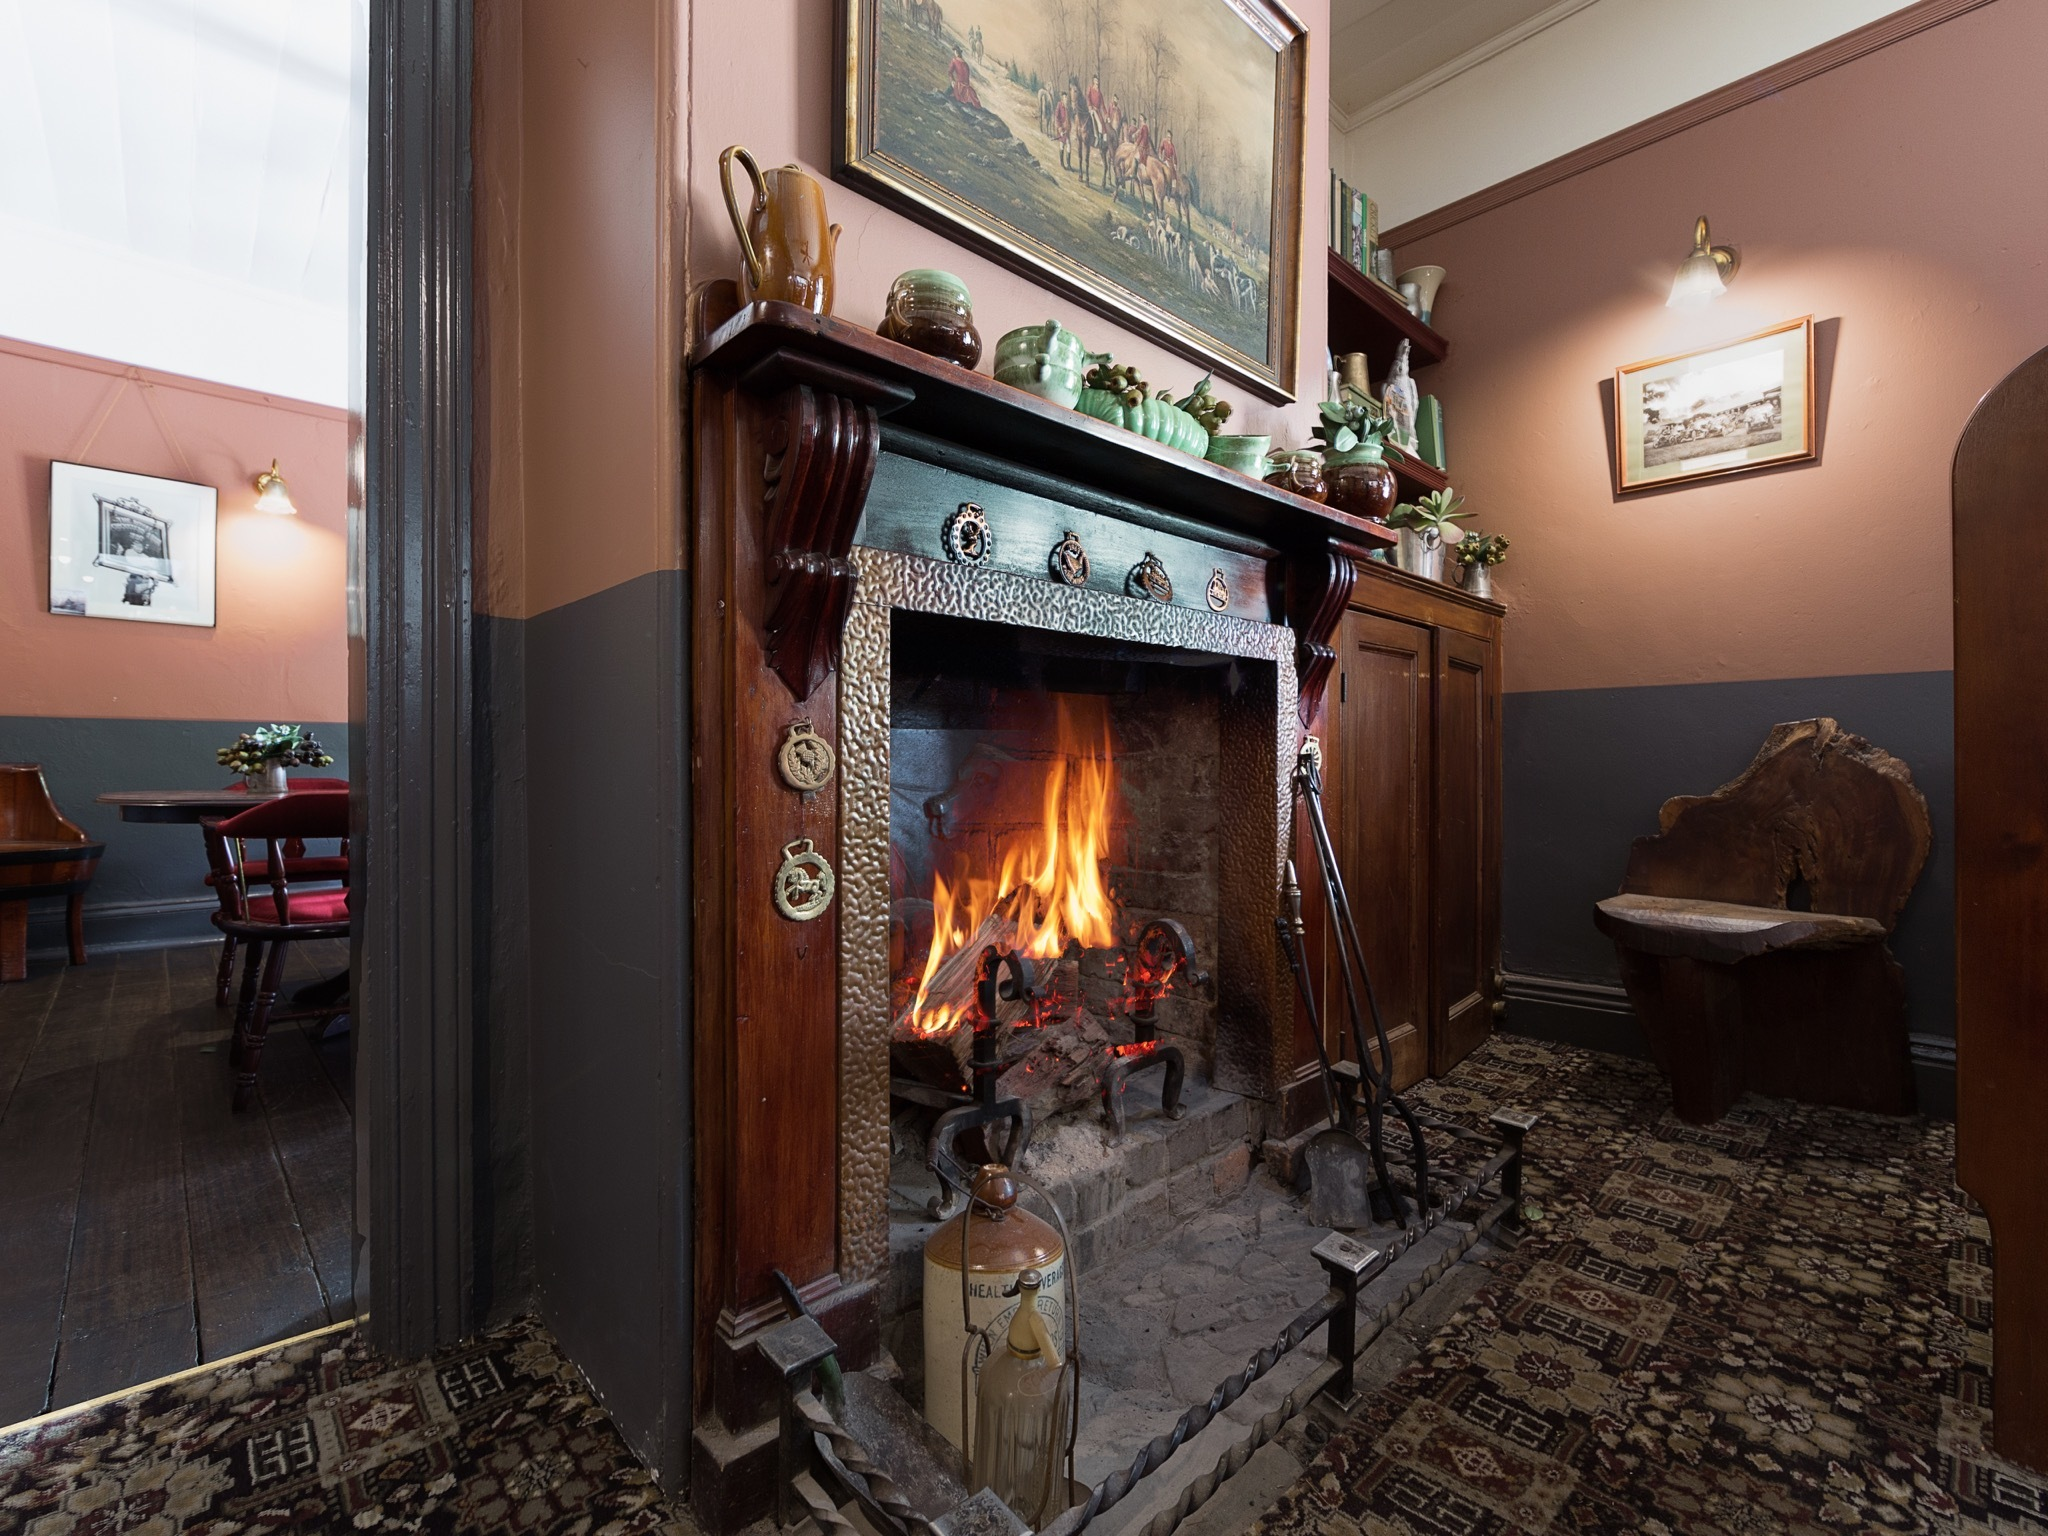 Fireplace at Royal Cricketers Arms